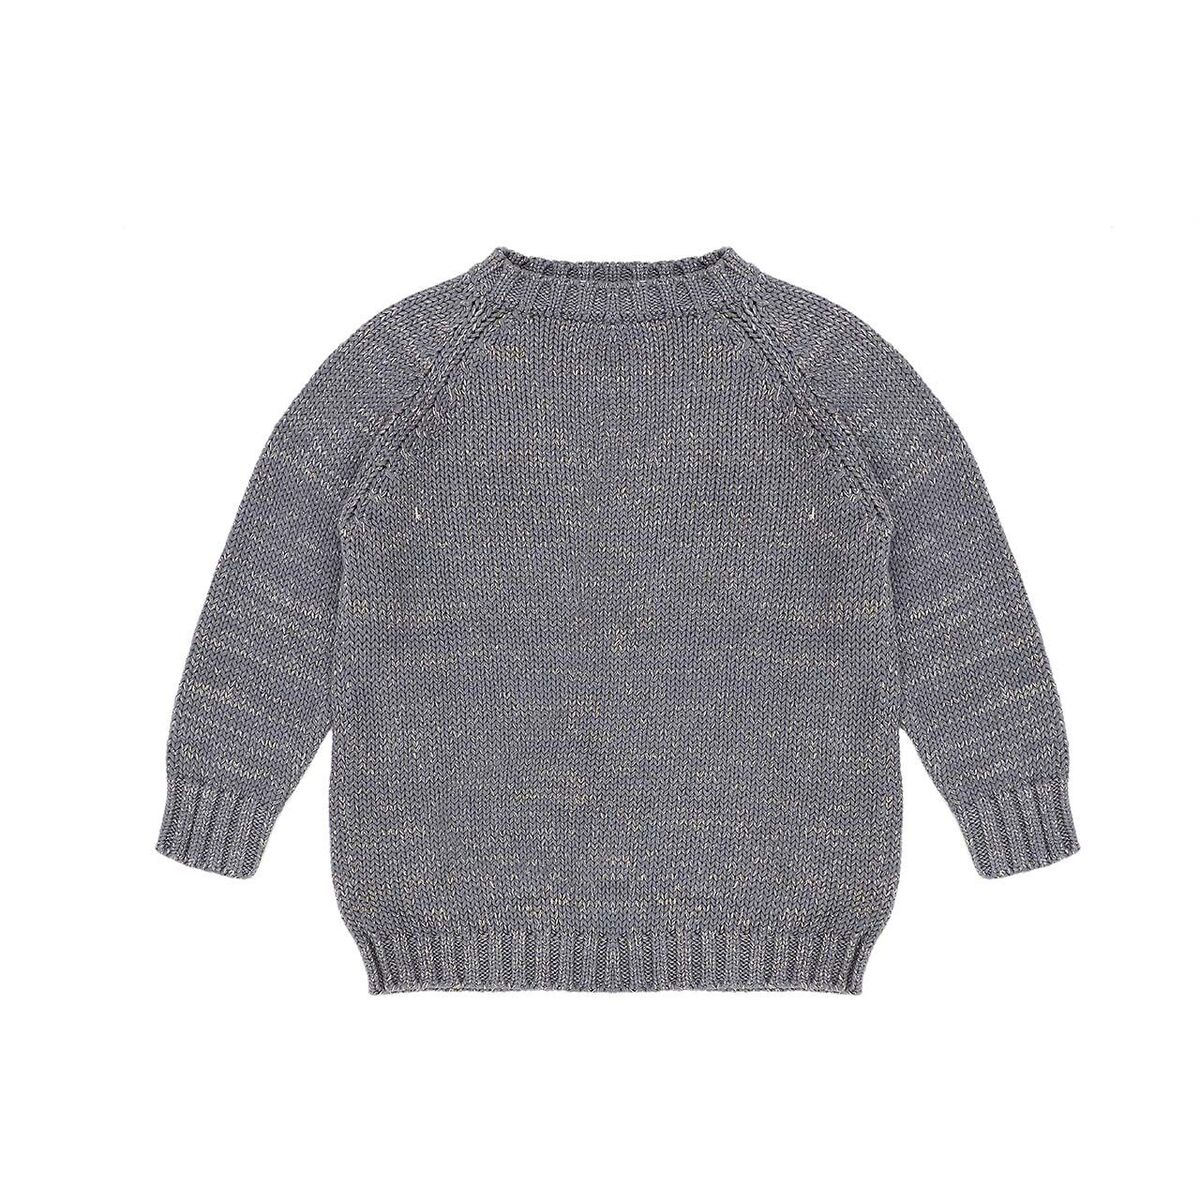 Bella and Lace Frankie Jumper Denim